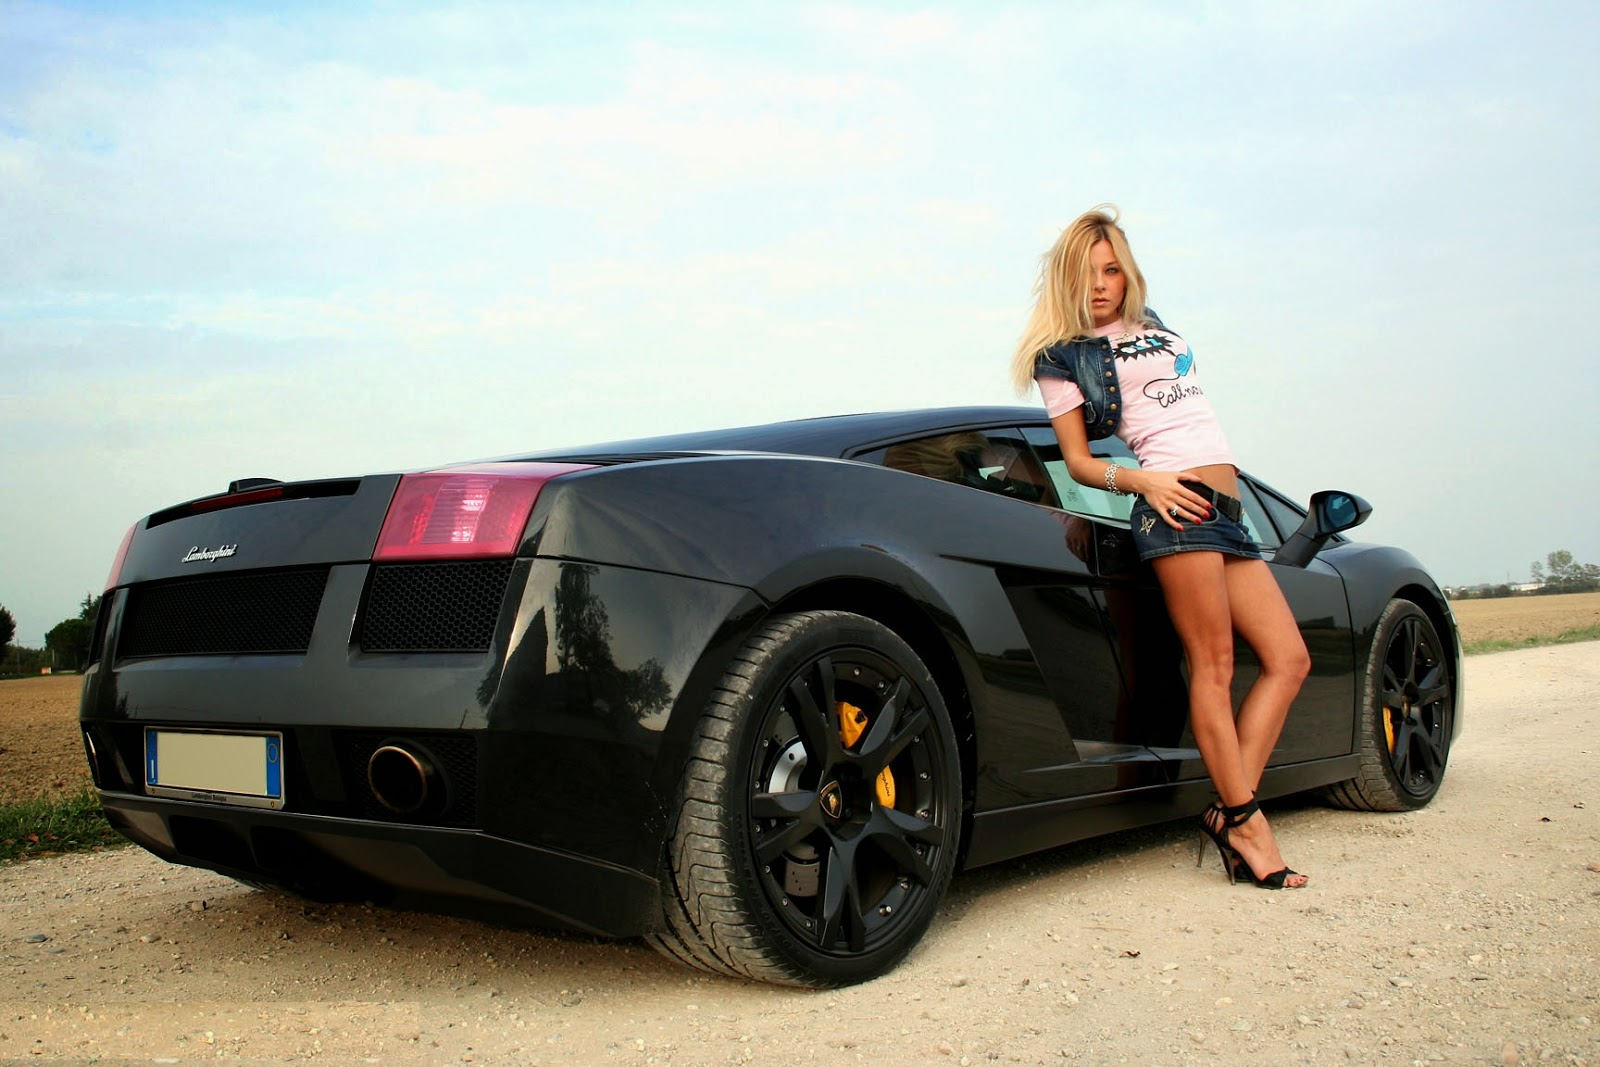 Sexy-girl-posing-with-black-car-HD-photo-wallpaper-download.jpg